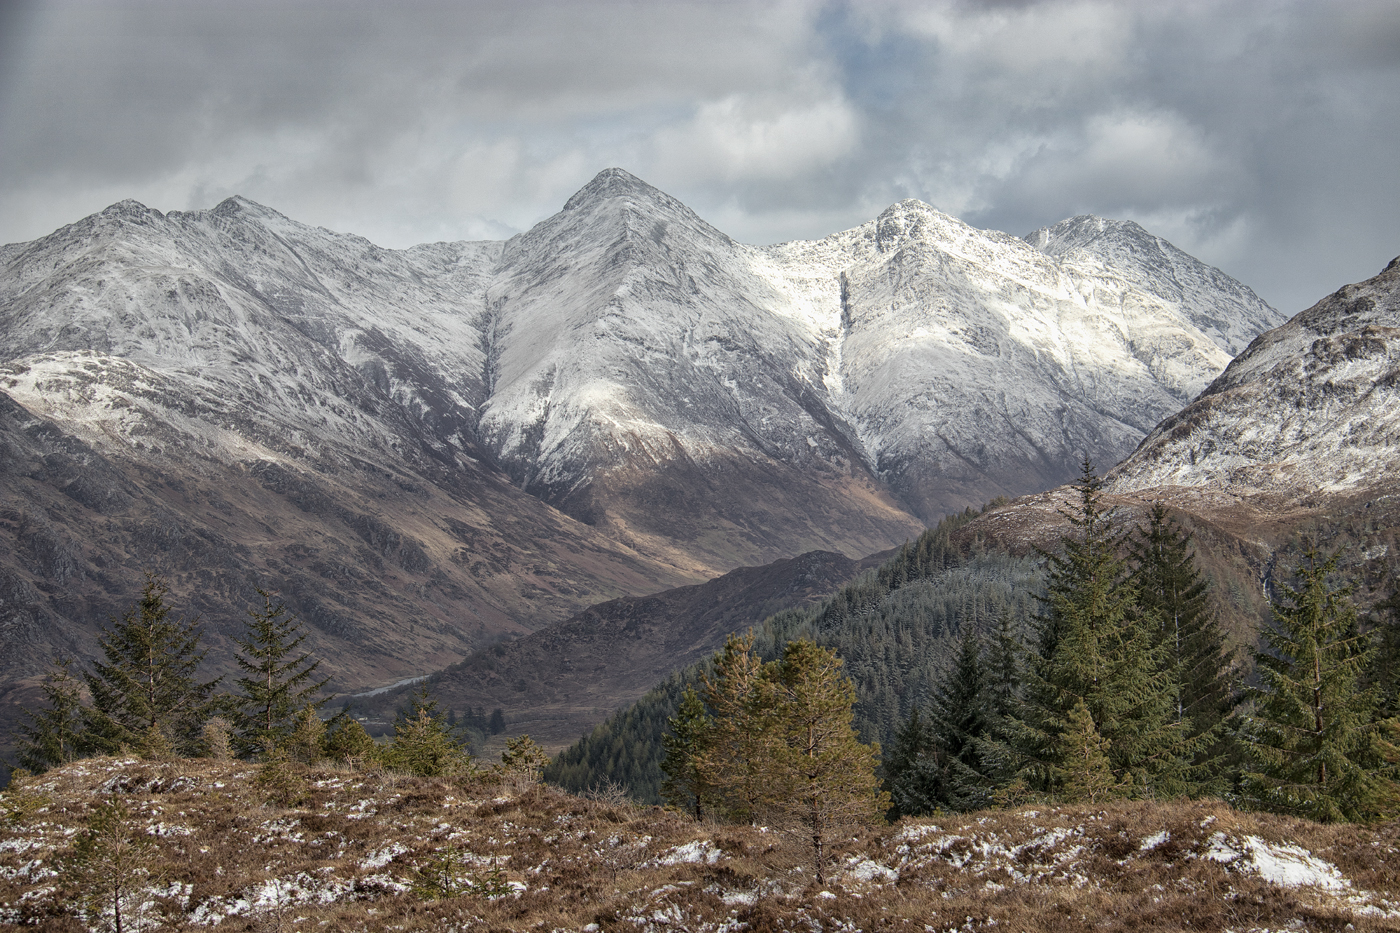 Sisters of Kintail